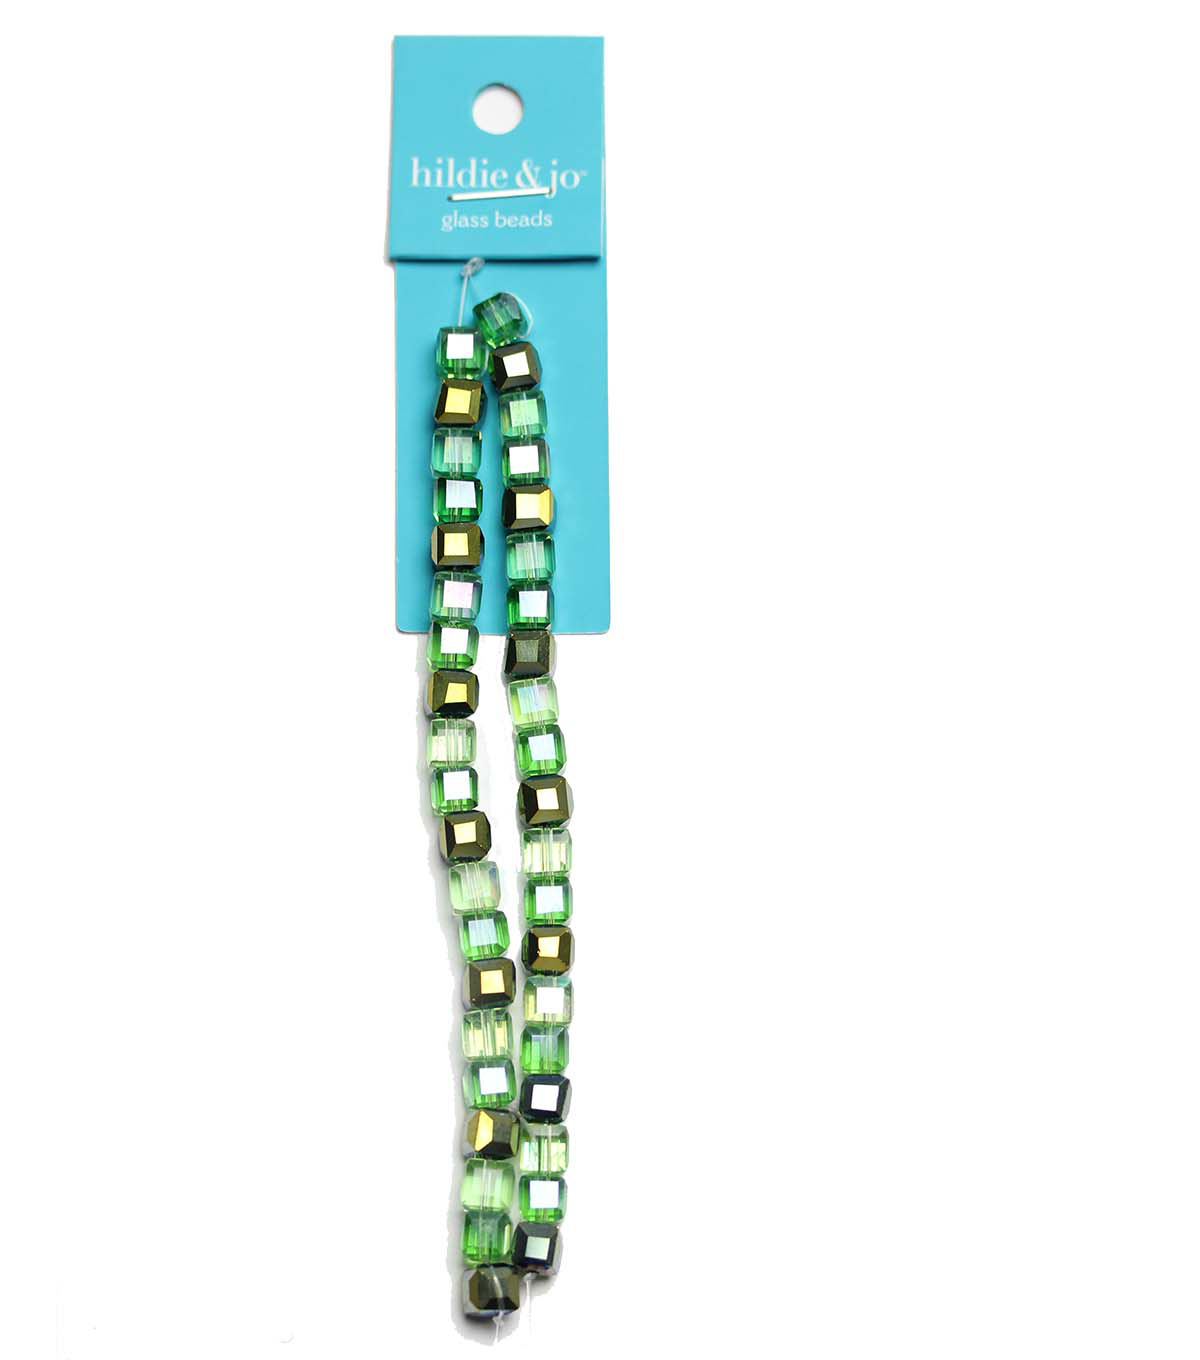 hildie & jo Strung Beads-Green Square Crystals